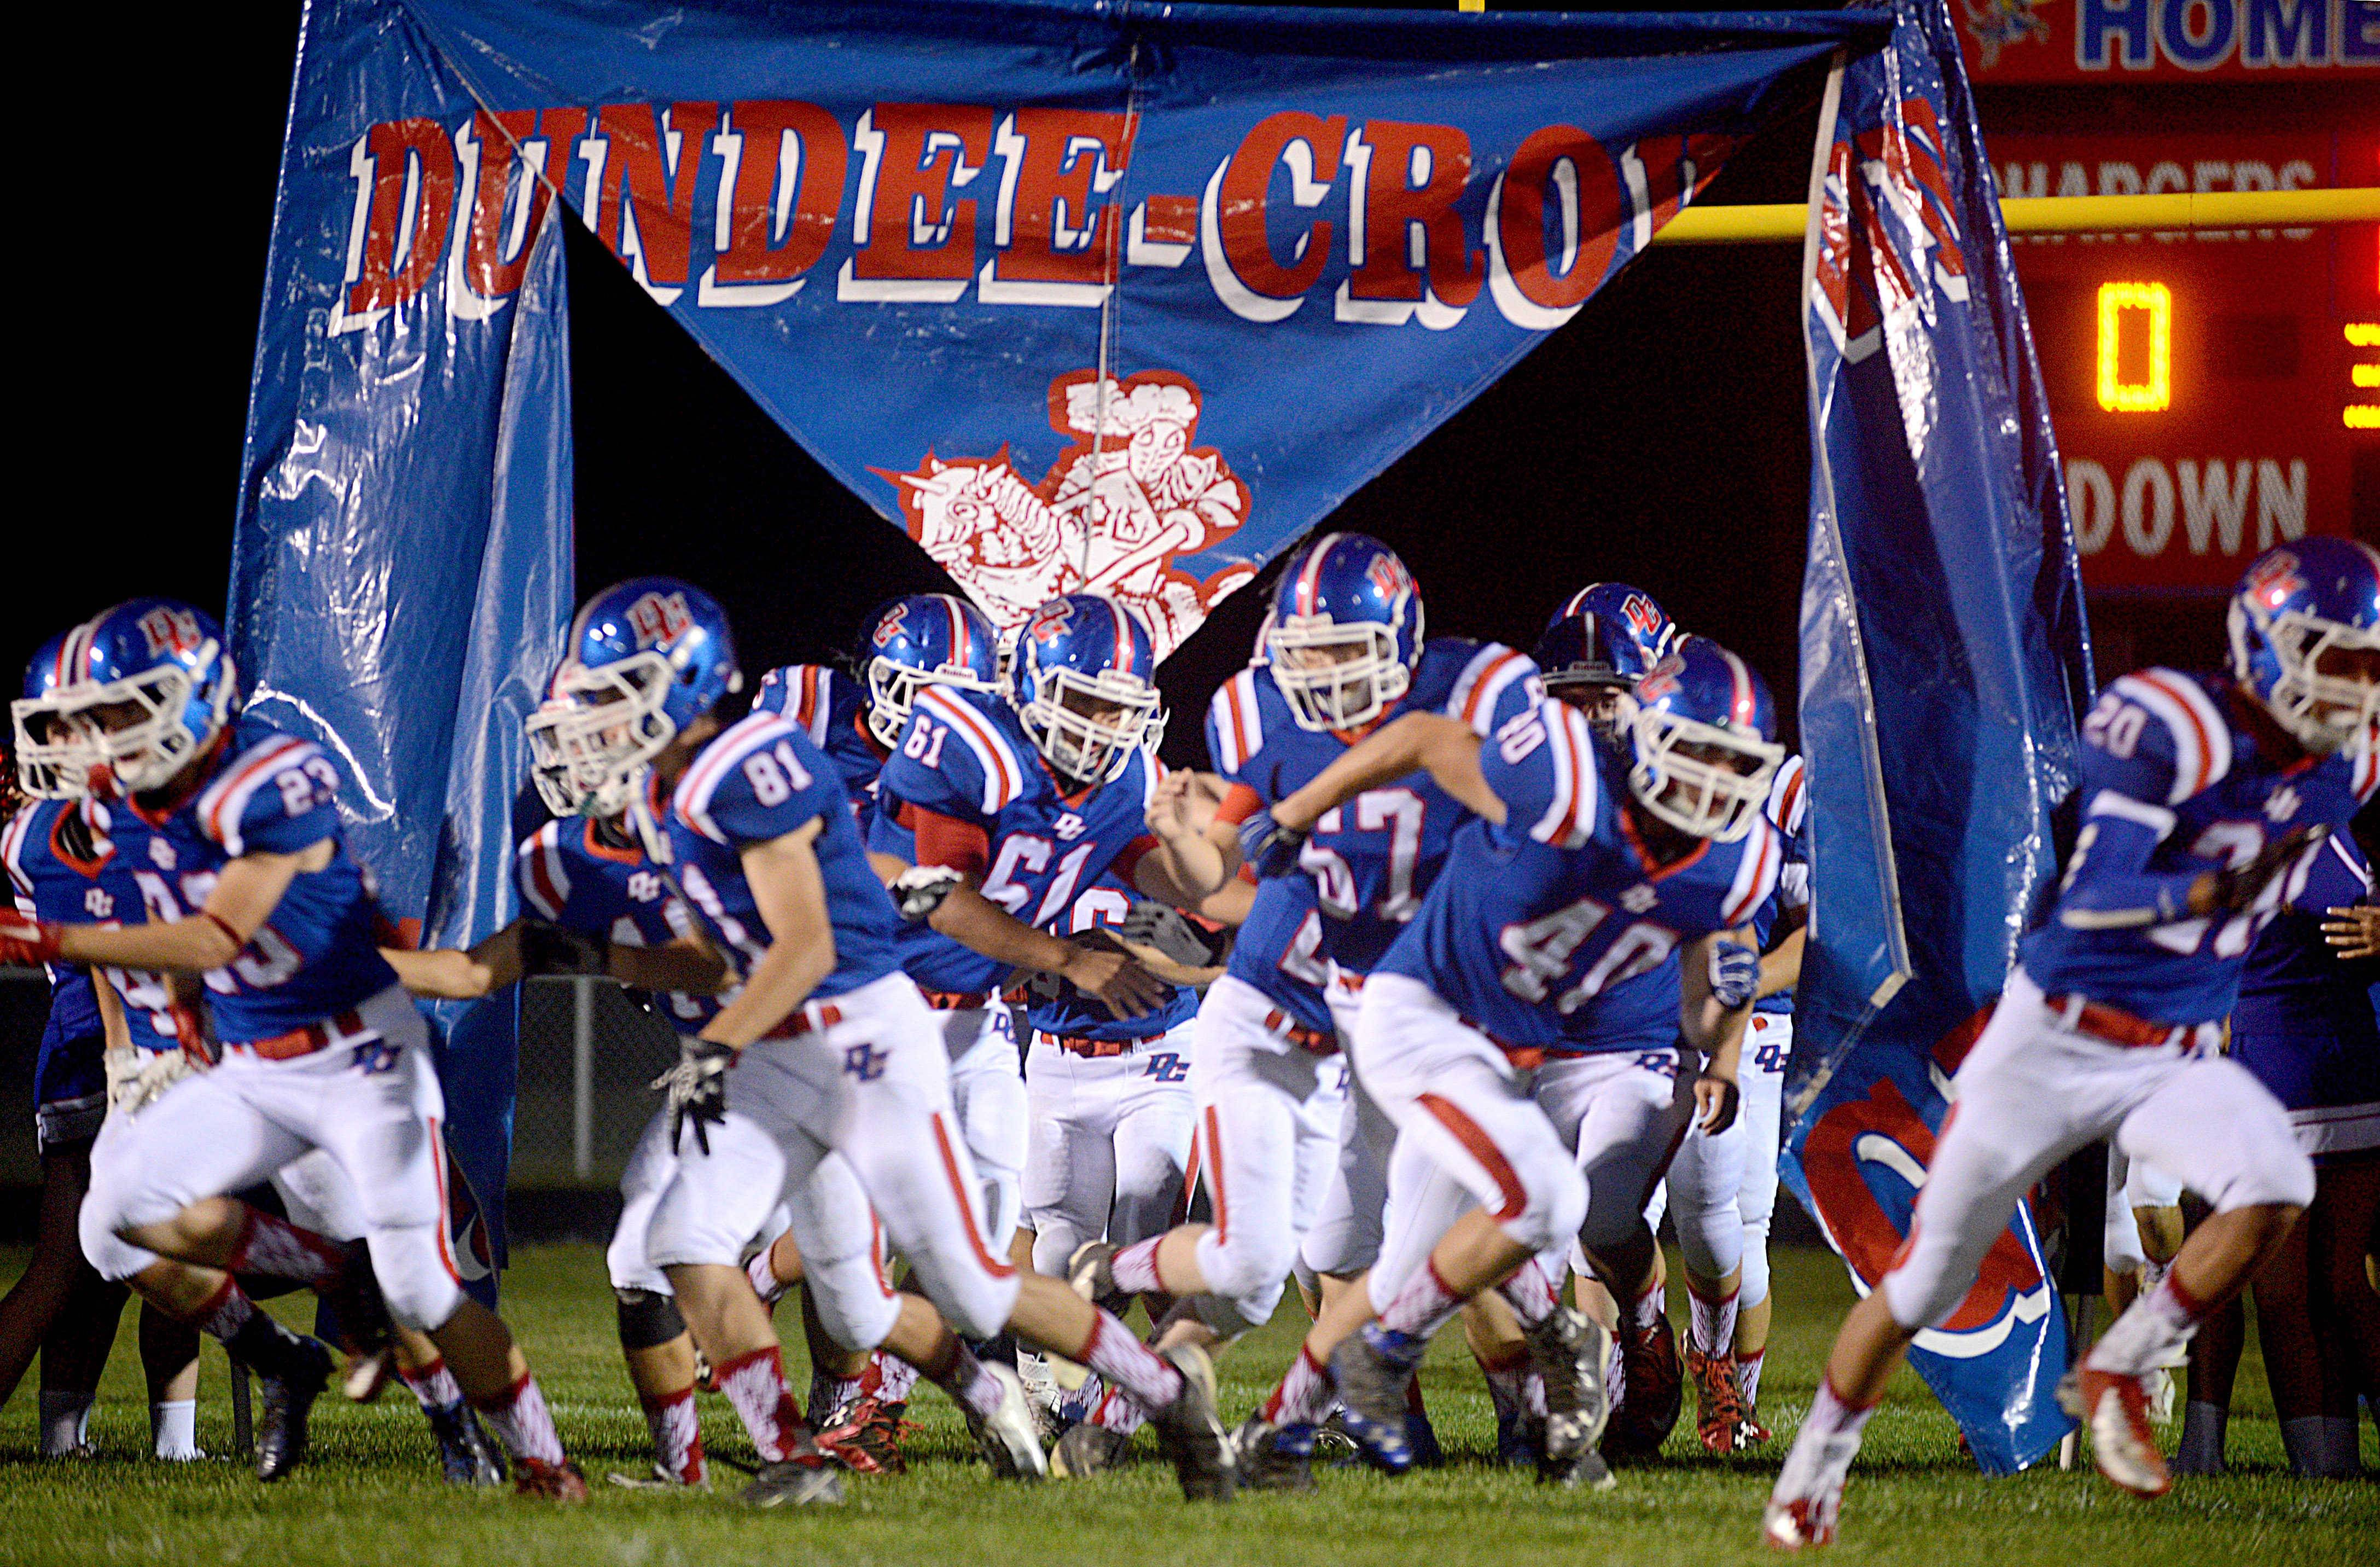 The Chargers of Dundee-Crown rip through the barrier to begin their 2015 campaign against Elgin's Maroons at Carpentersville Friday night.